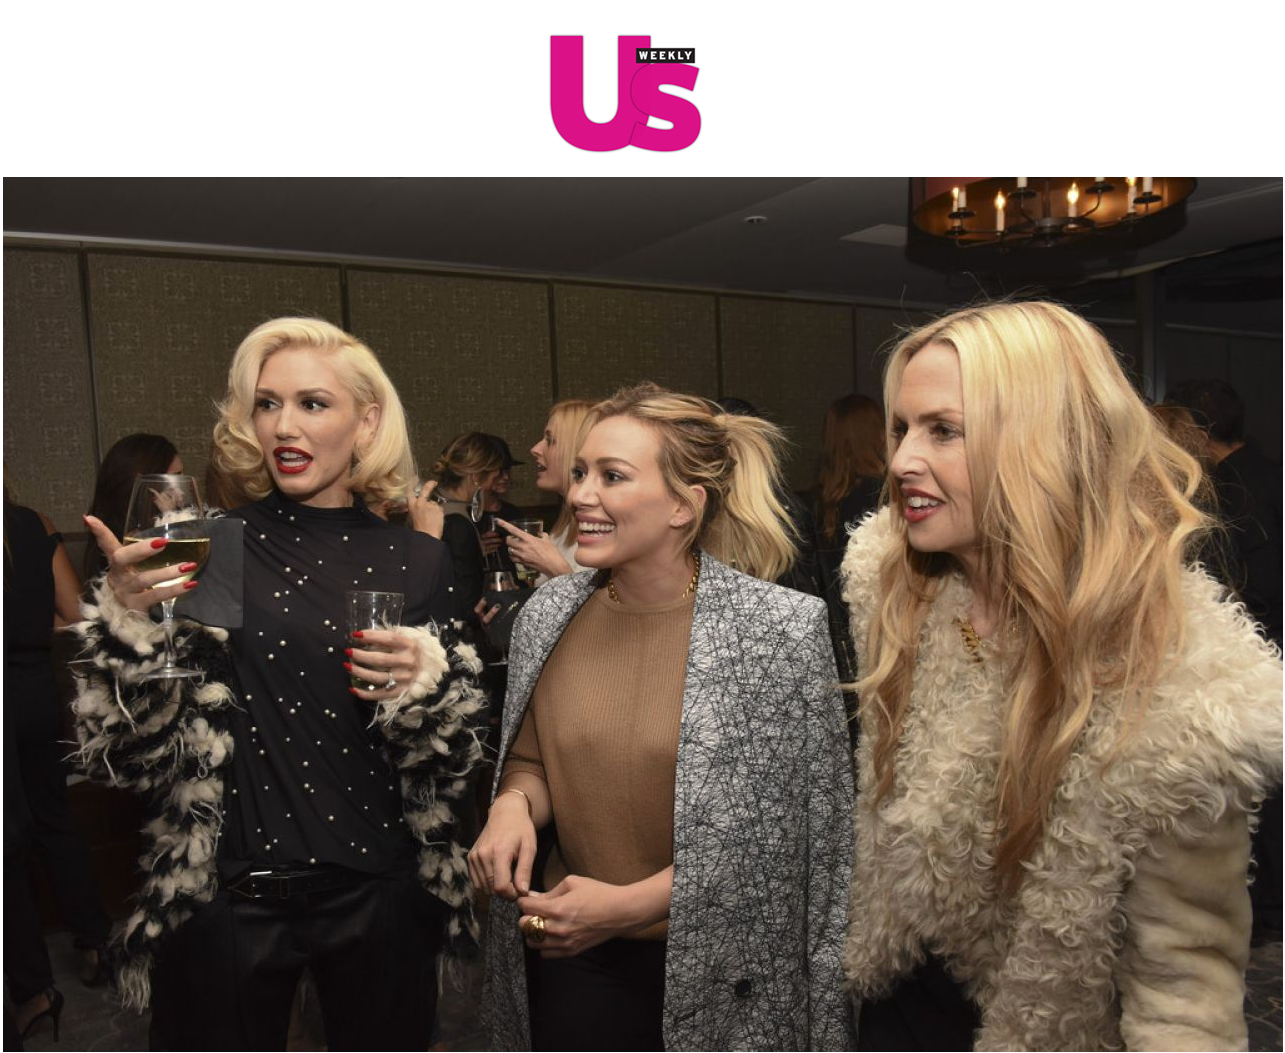 Gwen Stefani, Hilary Duff, and Rachel Zoe brought the glitz and the glam to the laucn bash for Established Jewelryin West Hollywood March 5